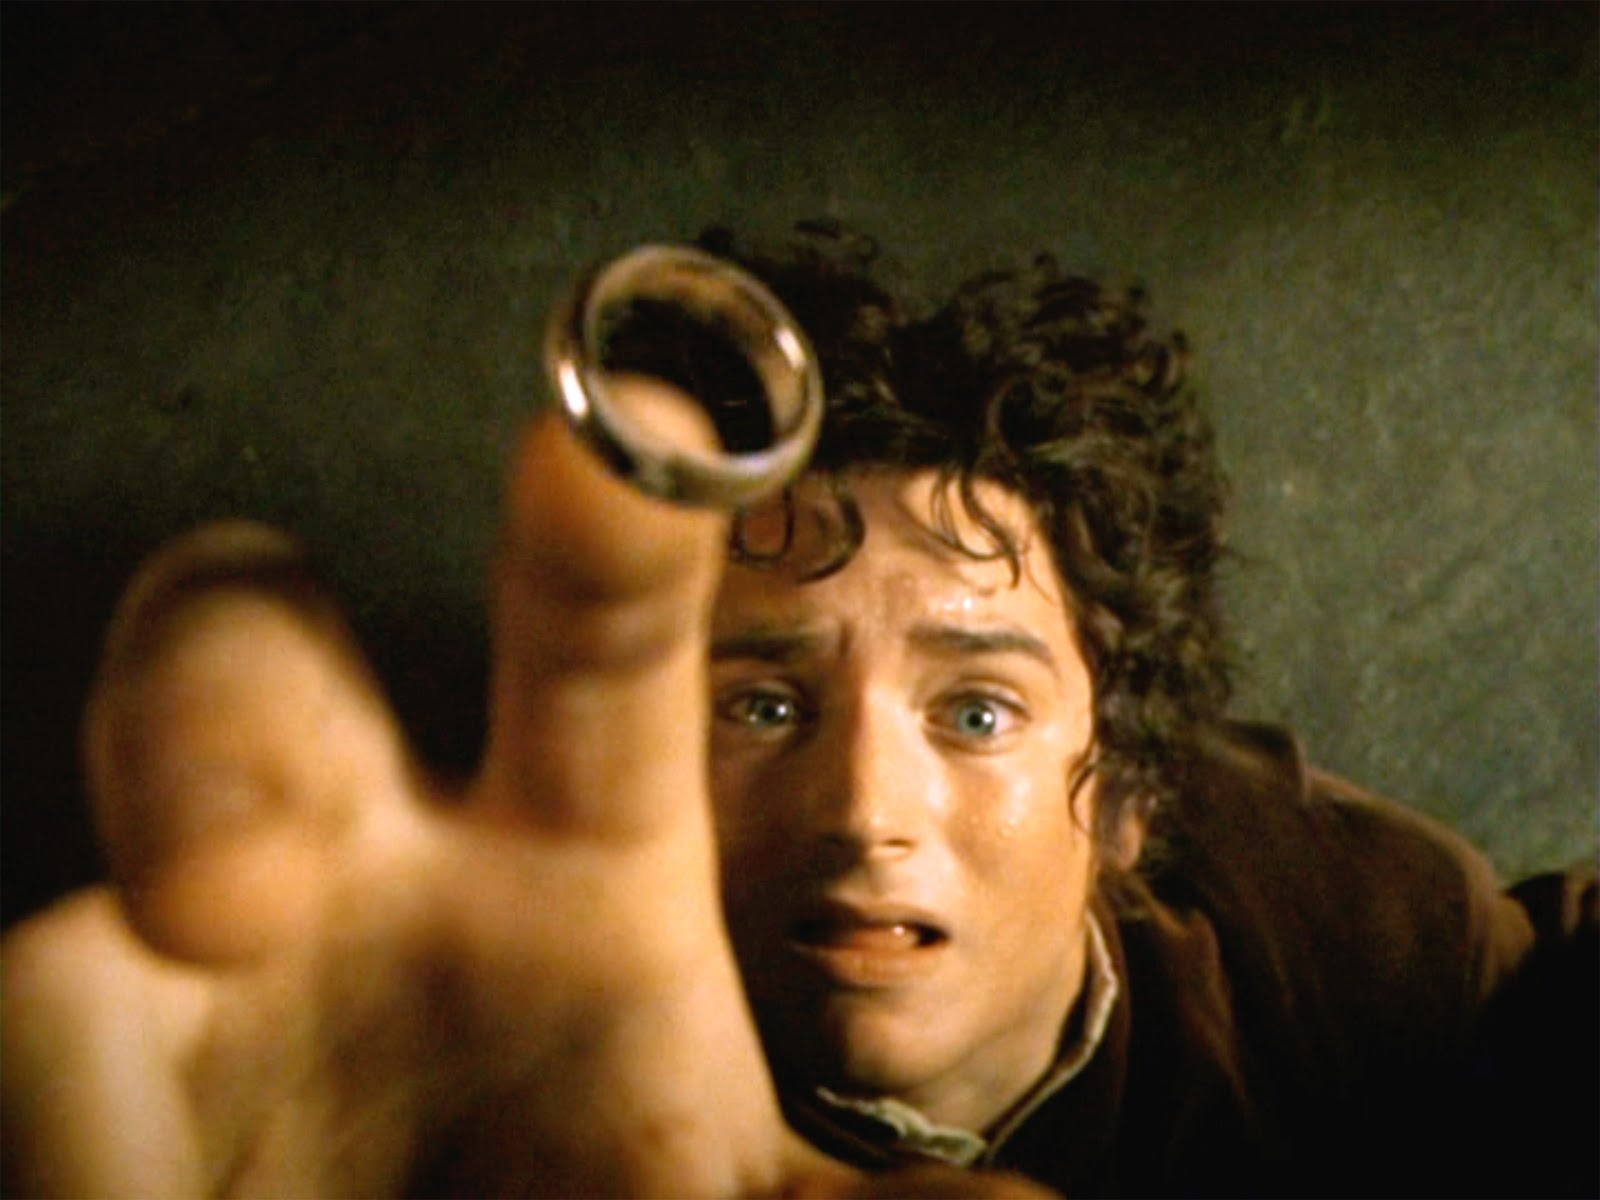 things favorite lotr characters content about rings onedio frodo our the co bad pussy s